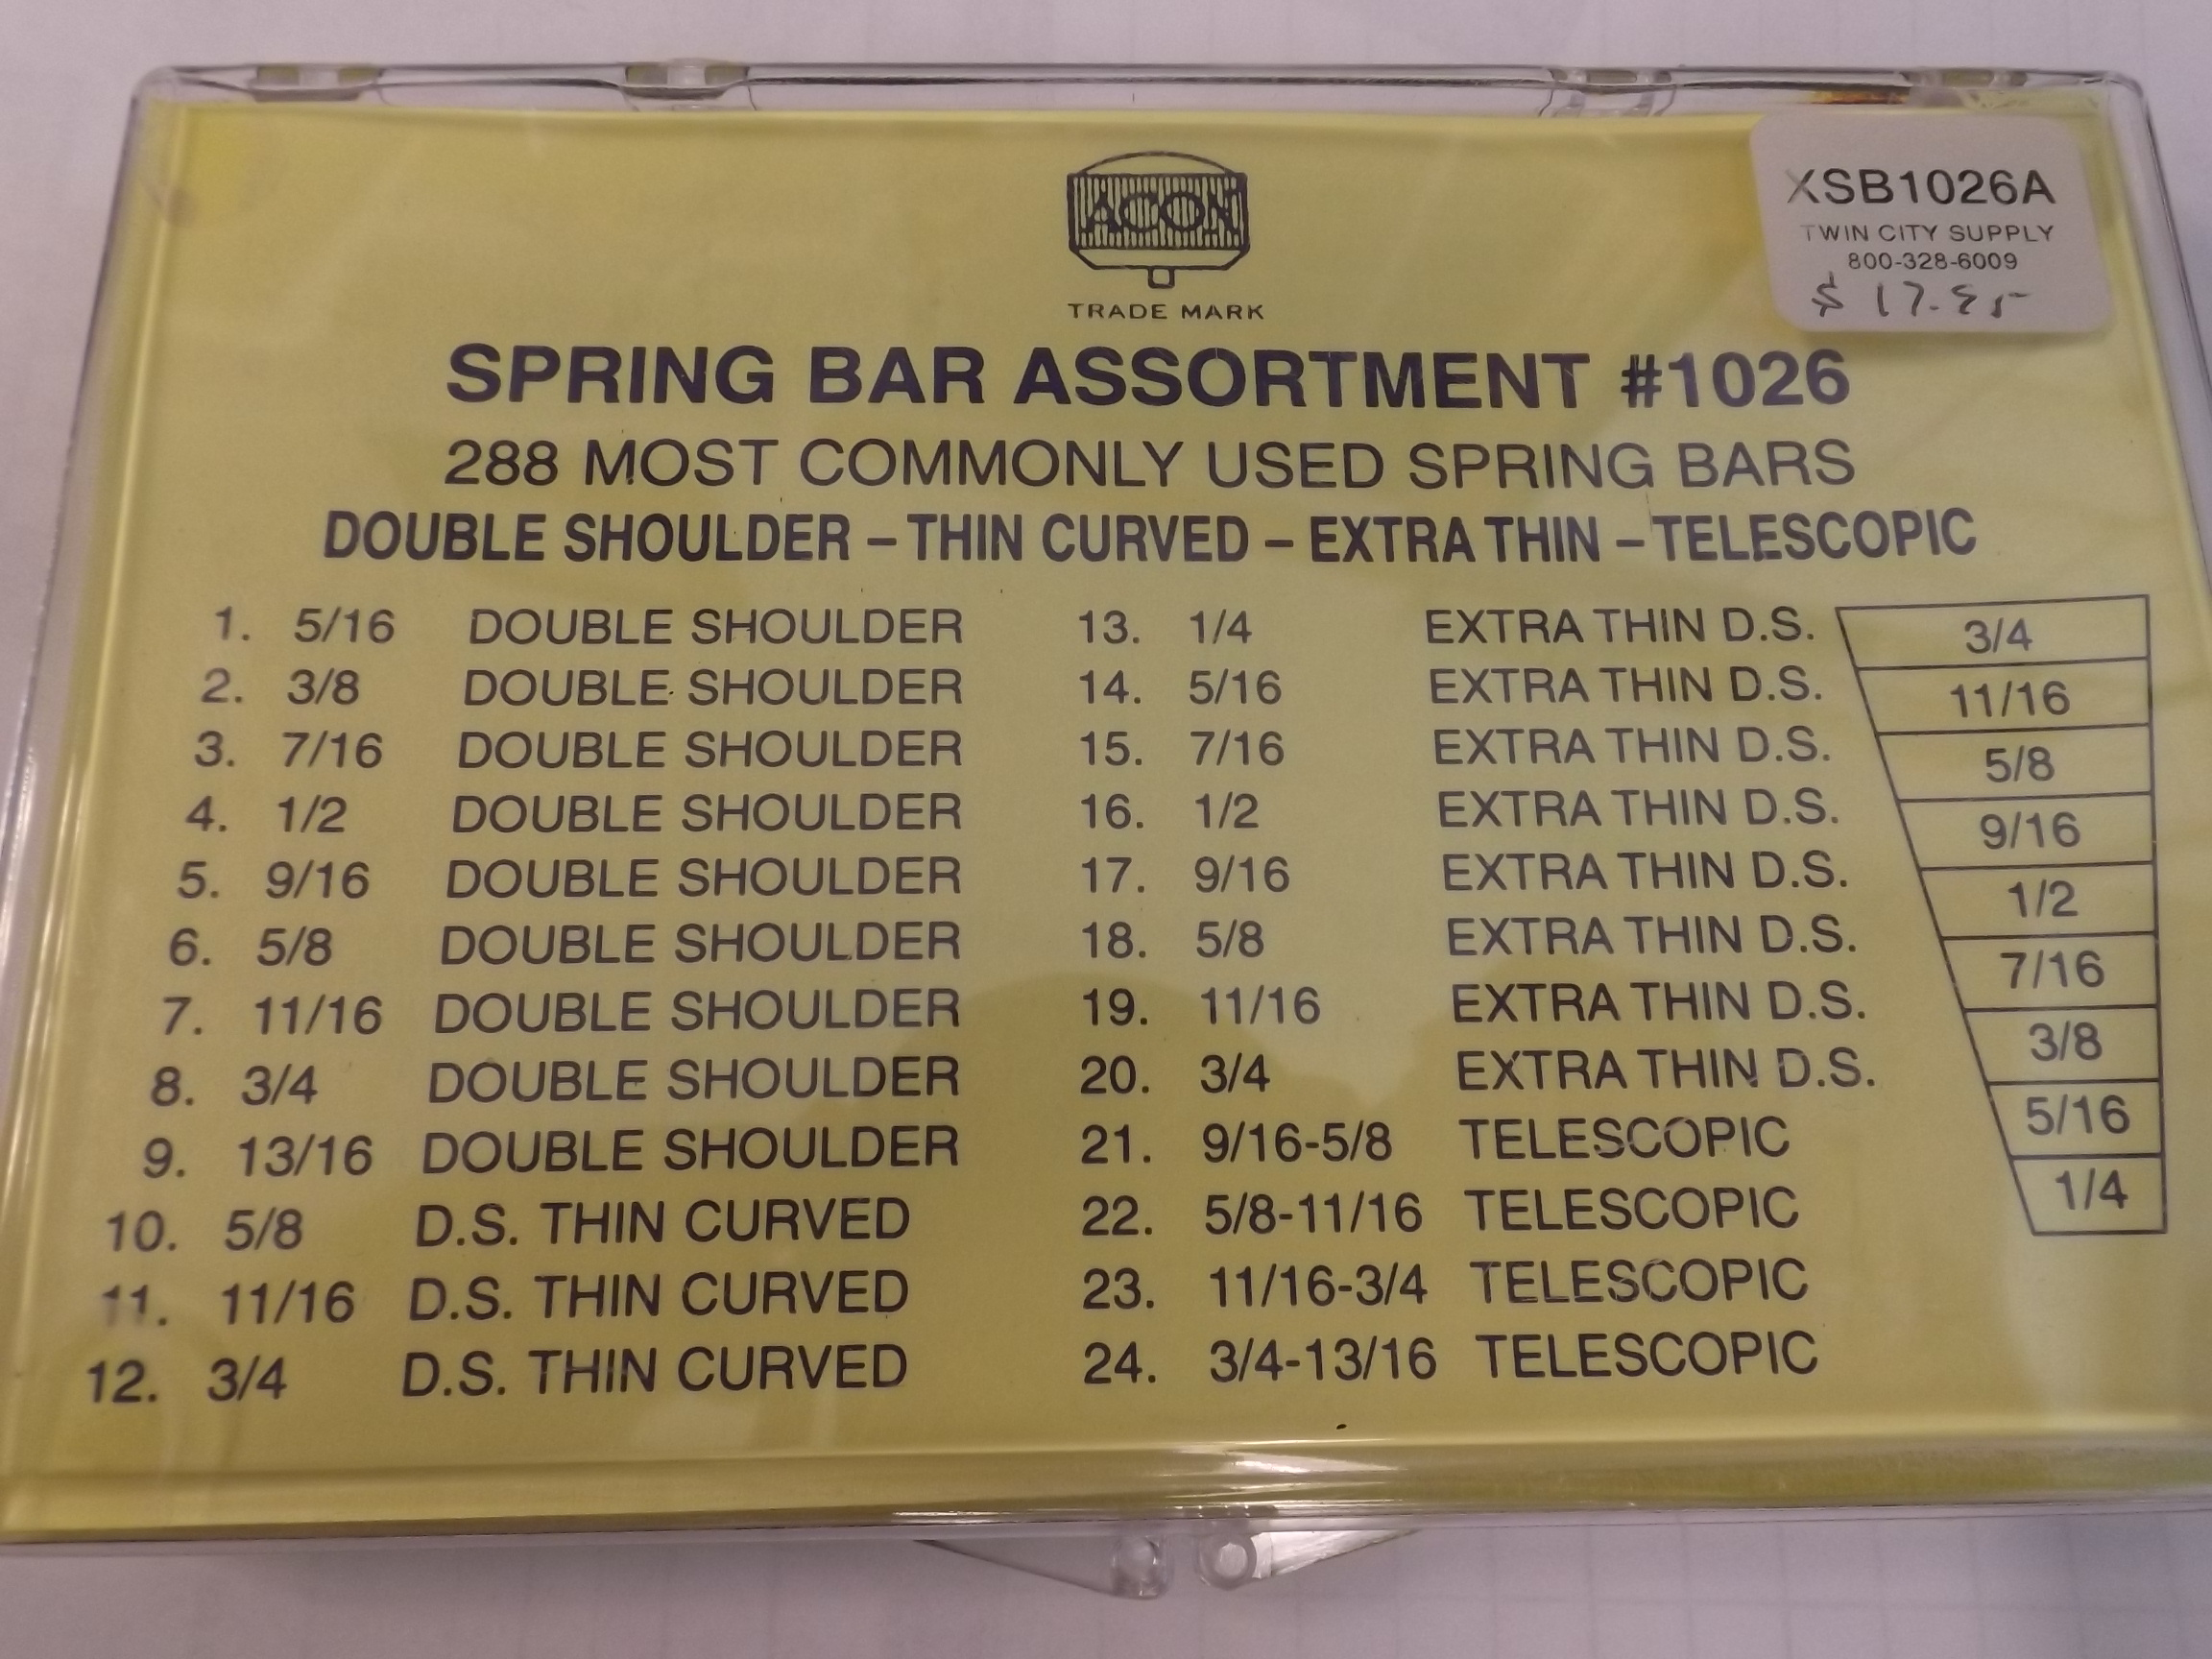 XSB1026A Acon Most Commonly Used 288 piece Spring Bar Assortment